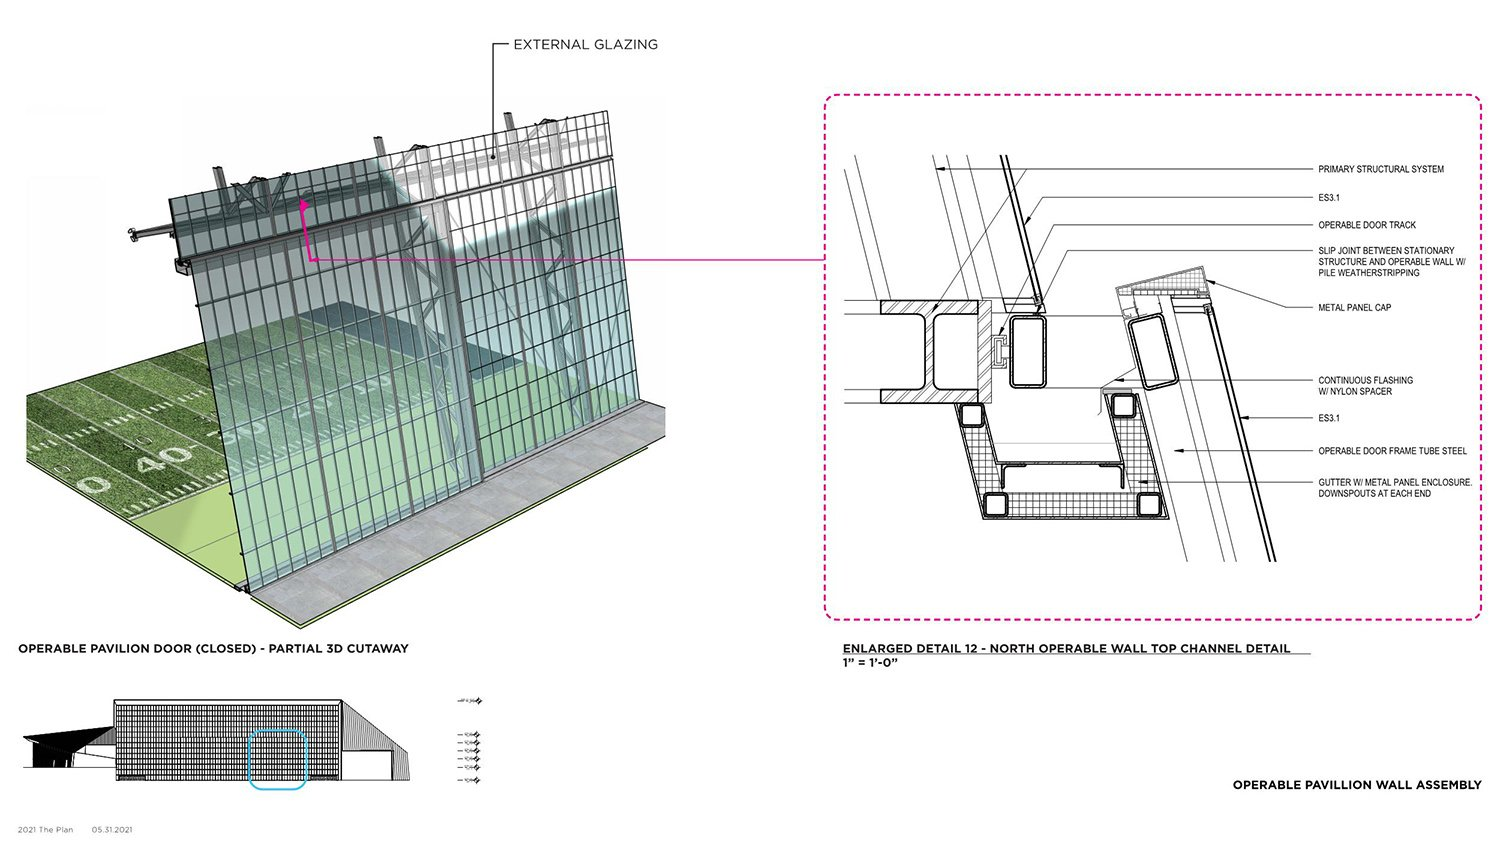 OPERABLE PAVILION WALL ASSEMBLY POPULOUS}